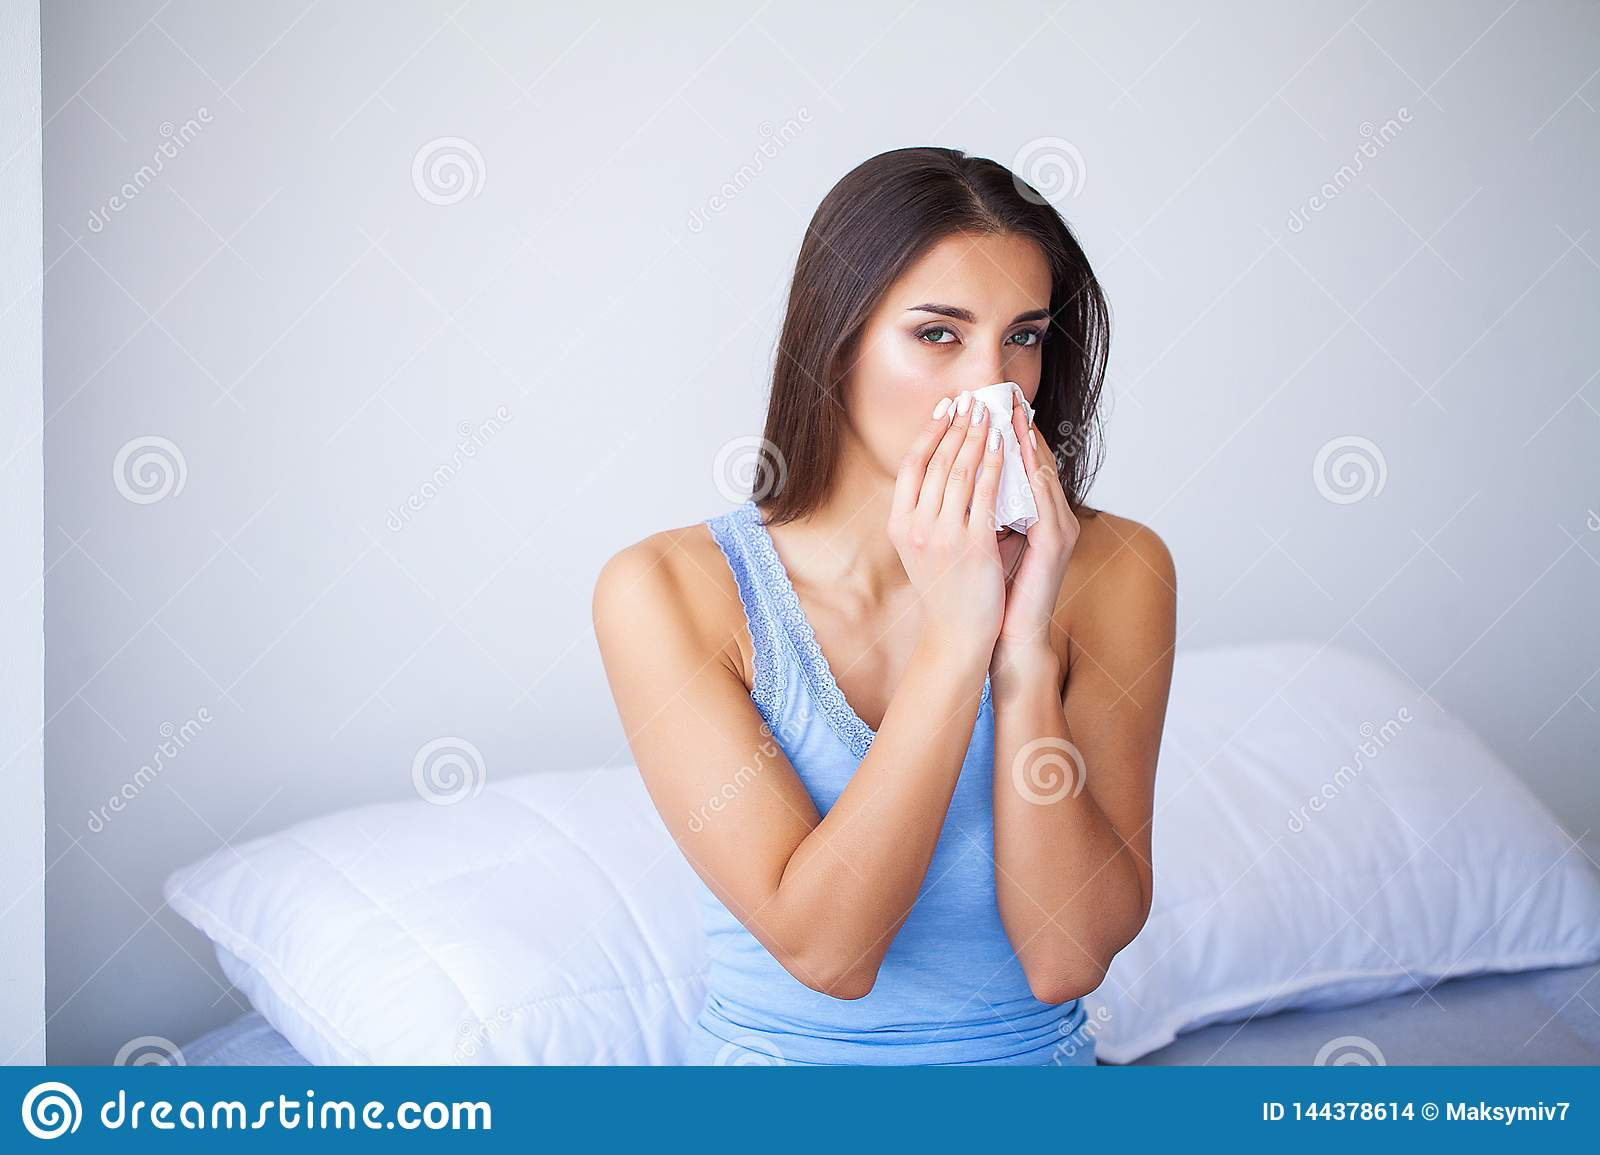 Sick Woman and Flu. Woman Caught Cold. Sneezing into Tissue